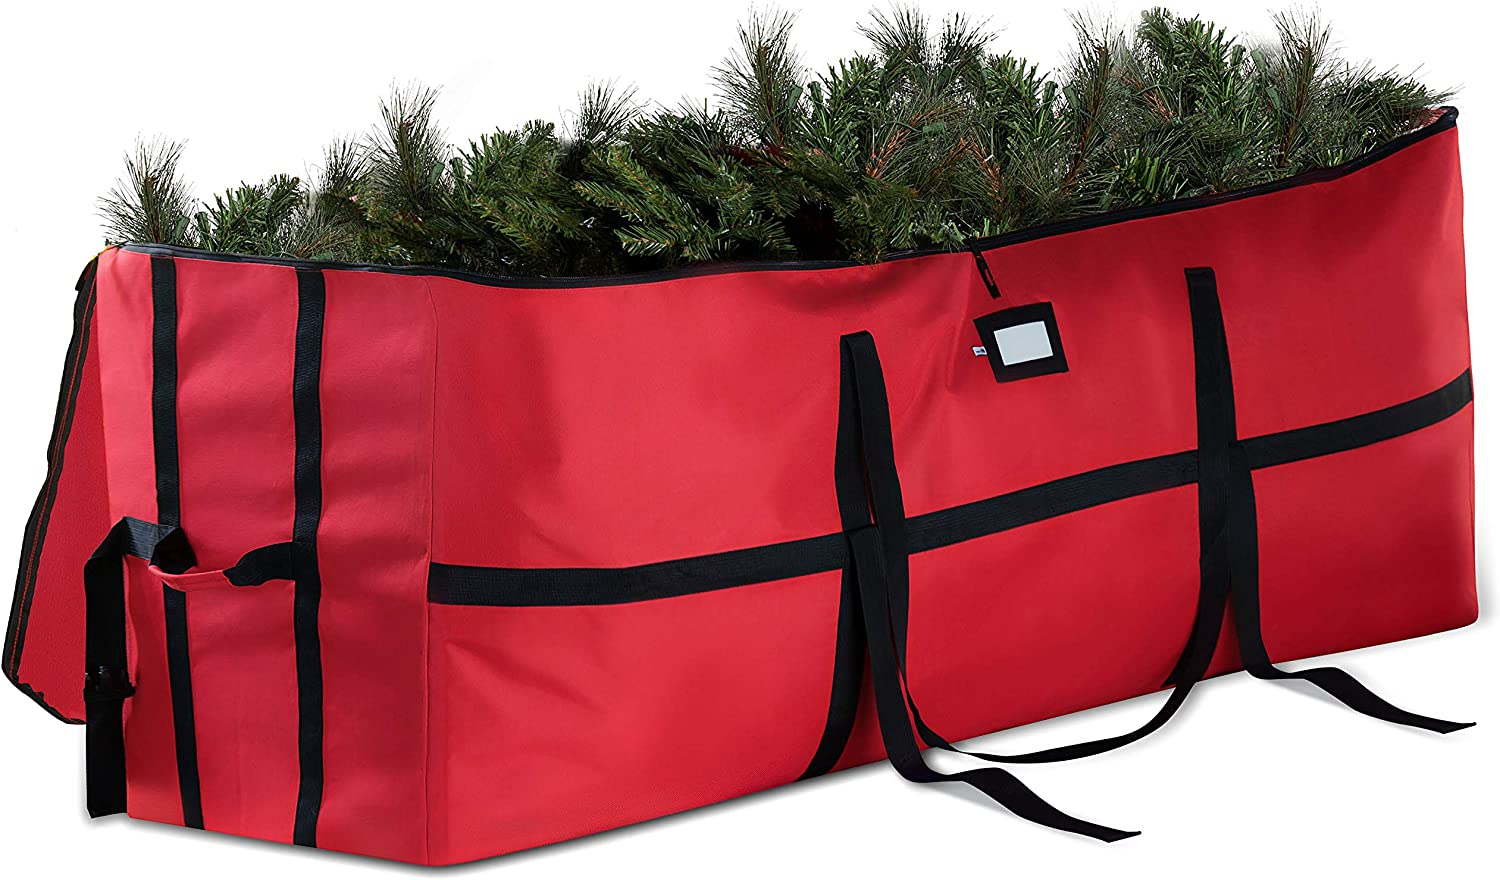 Extra Wide Opening Tree Storage Bag - To Our shop most popular 7.5 Ar Tall Max 66% OFF Up Fits ft.